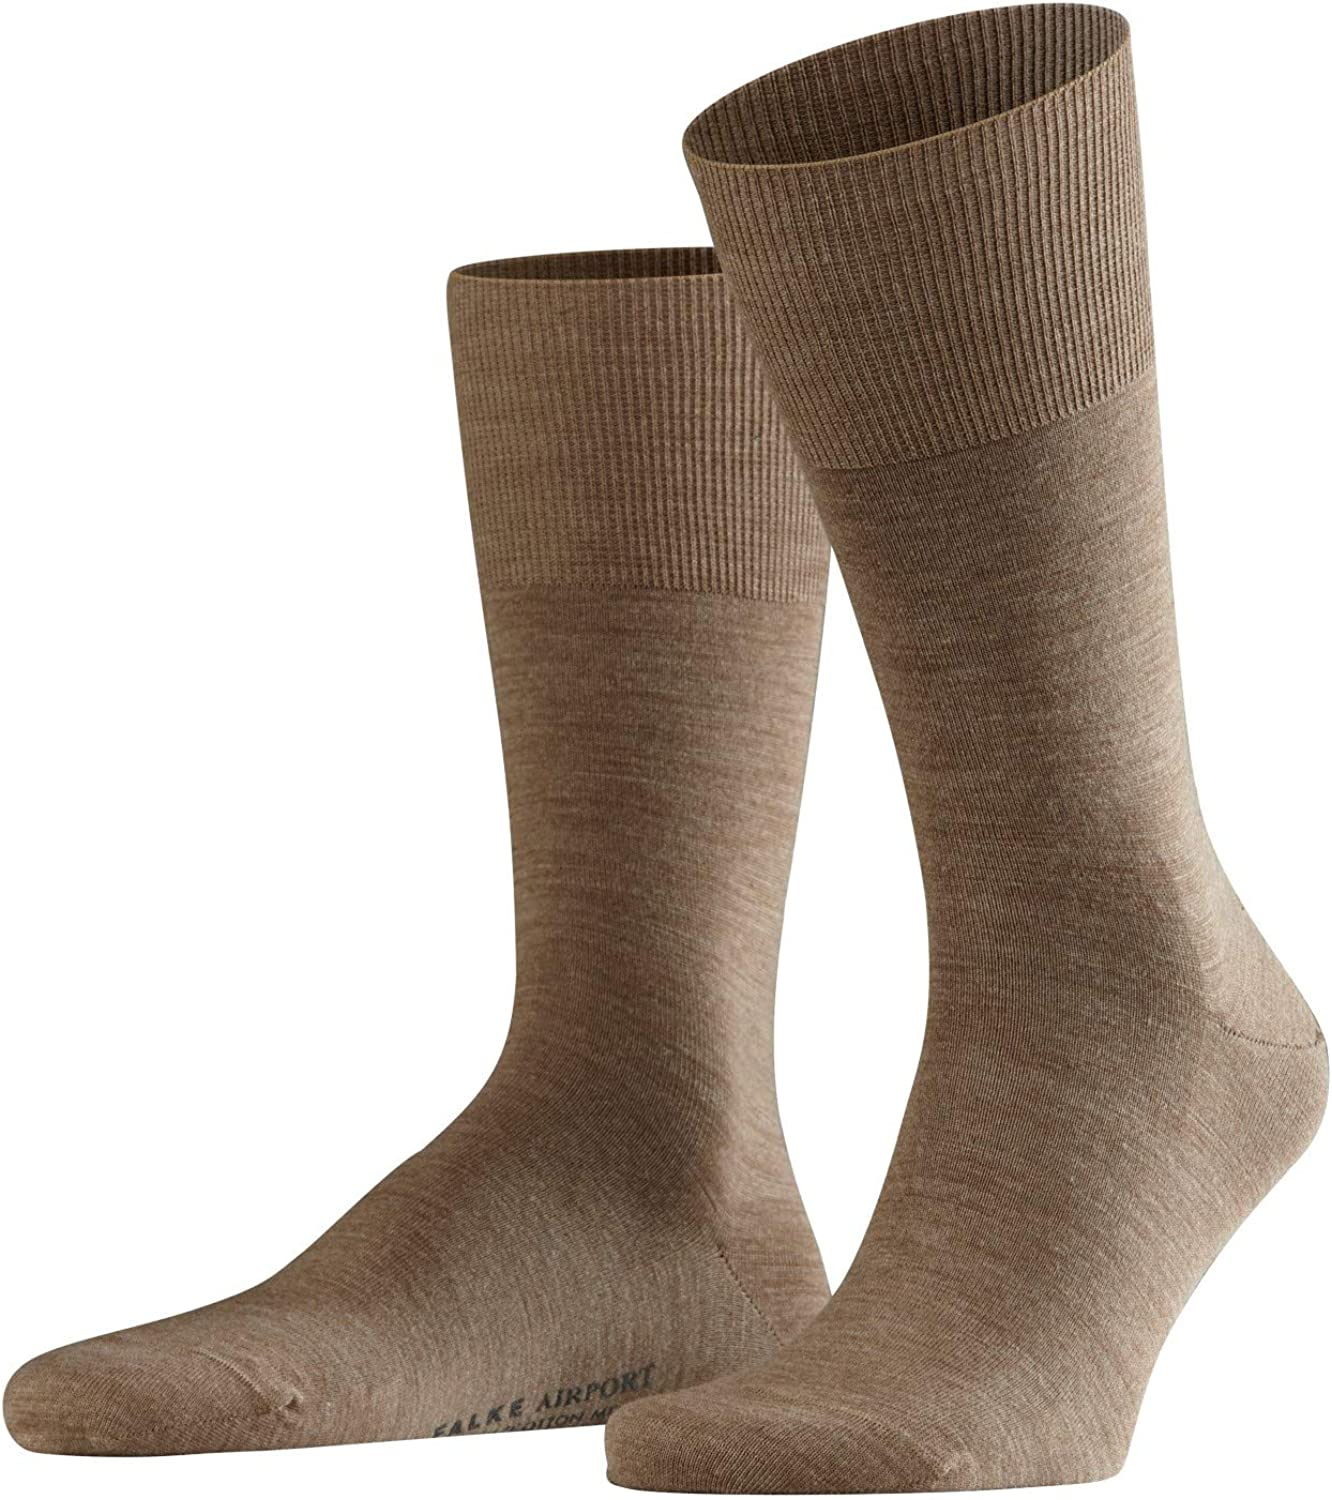 Warm EU 39-50 Multiple Colours 1 Pair Merino Wool//Cotton Blend ideal for any occasion FALKE Men Airport Knee-Highs UK sizes 5.5-14 thermo-regulating